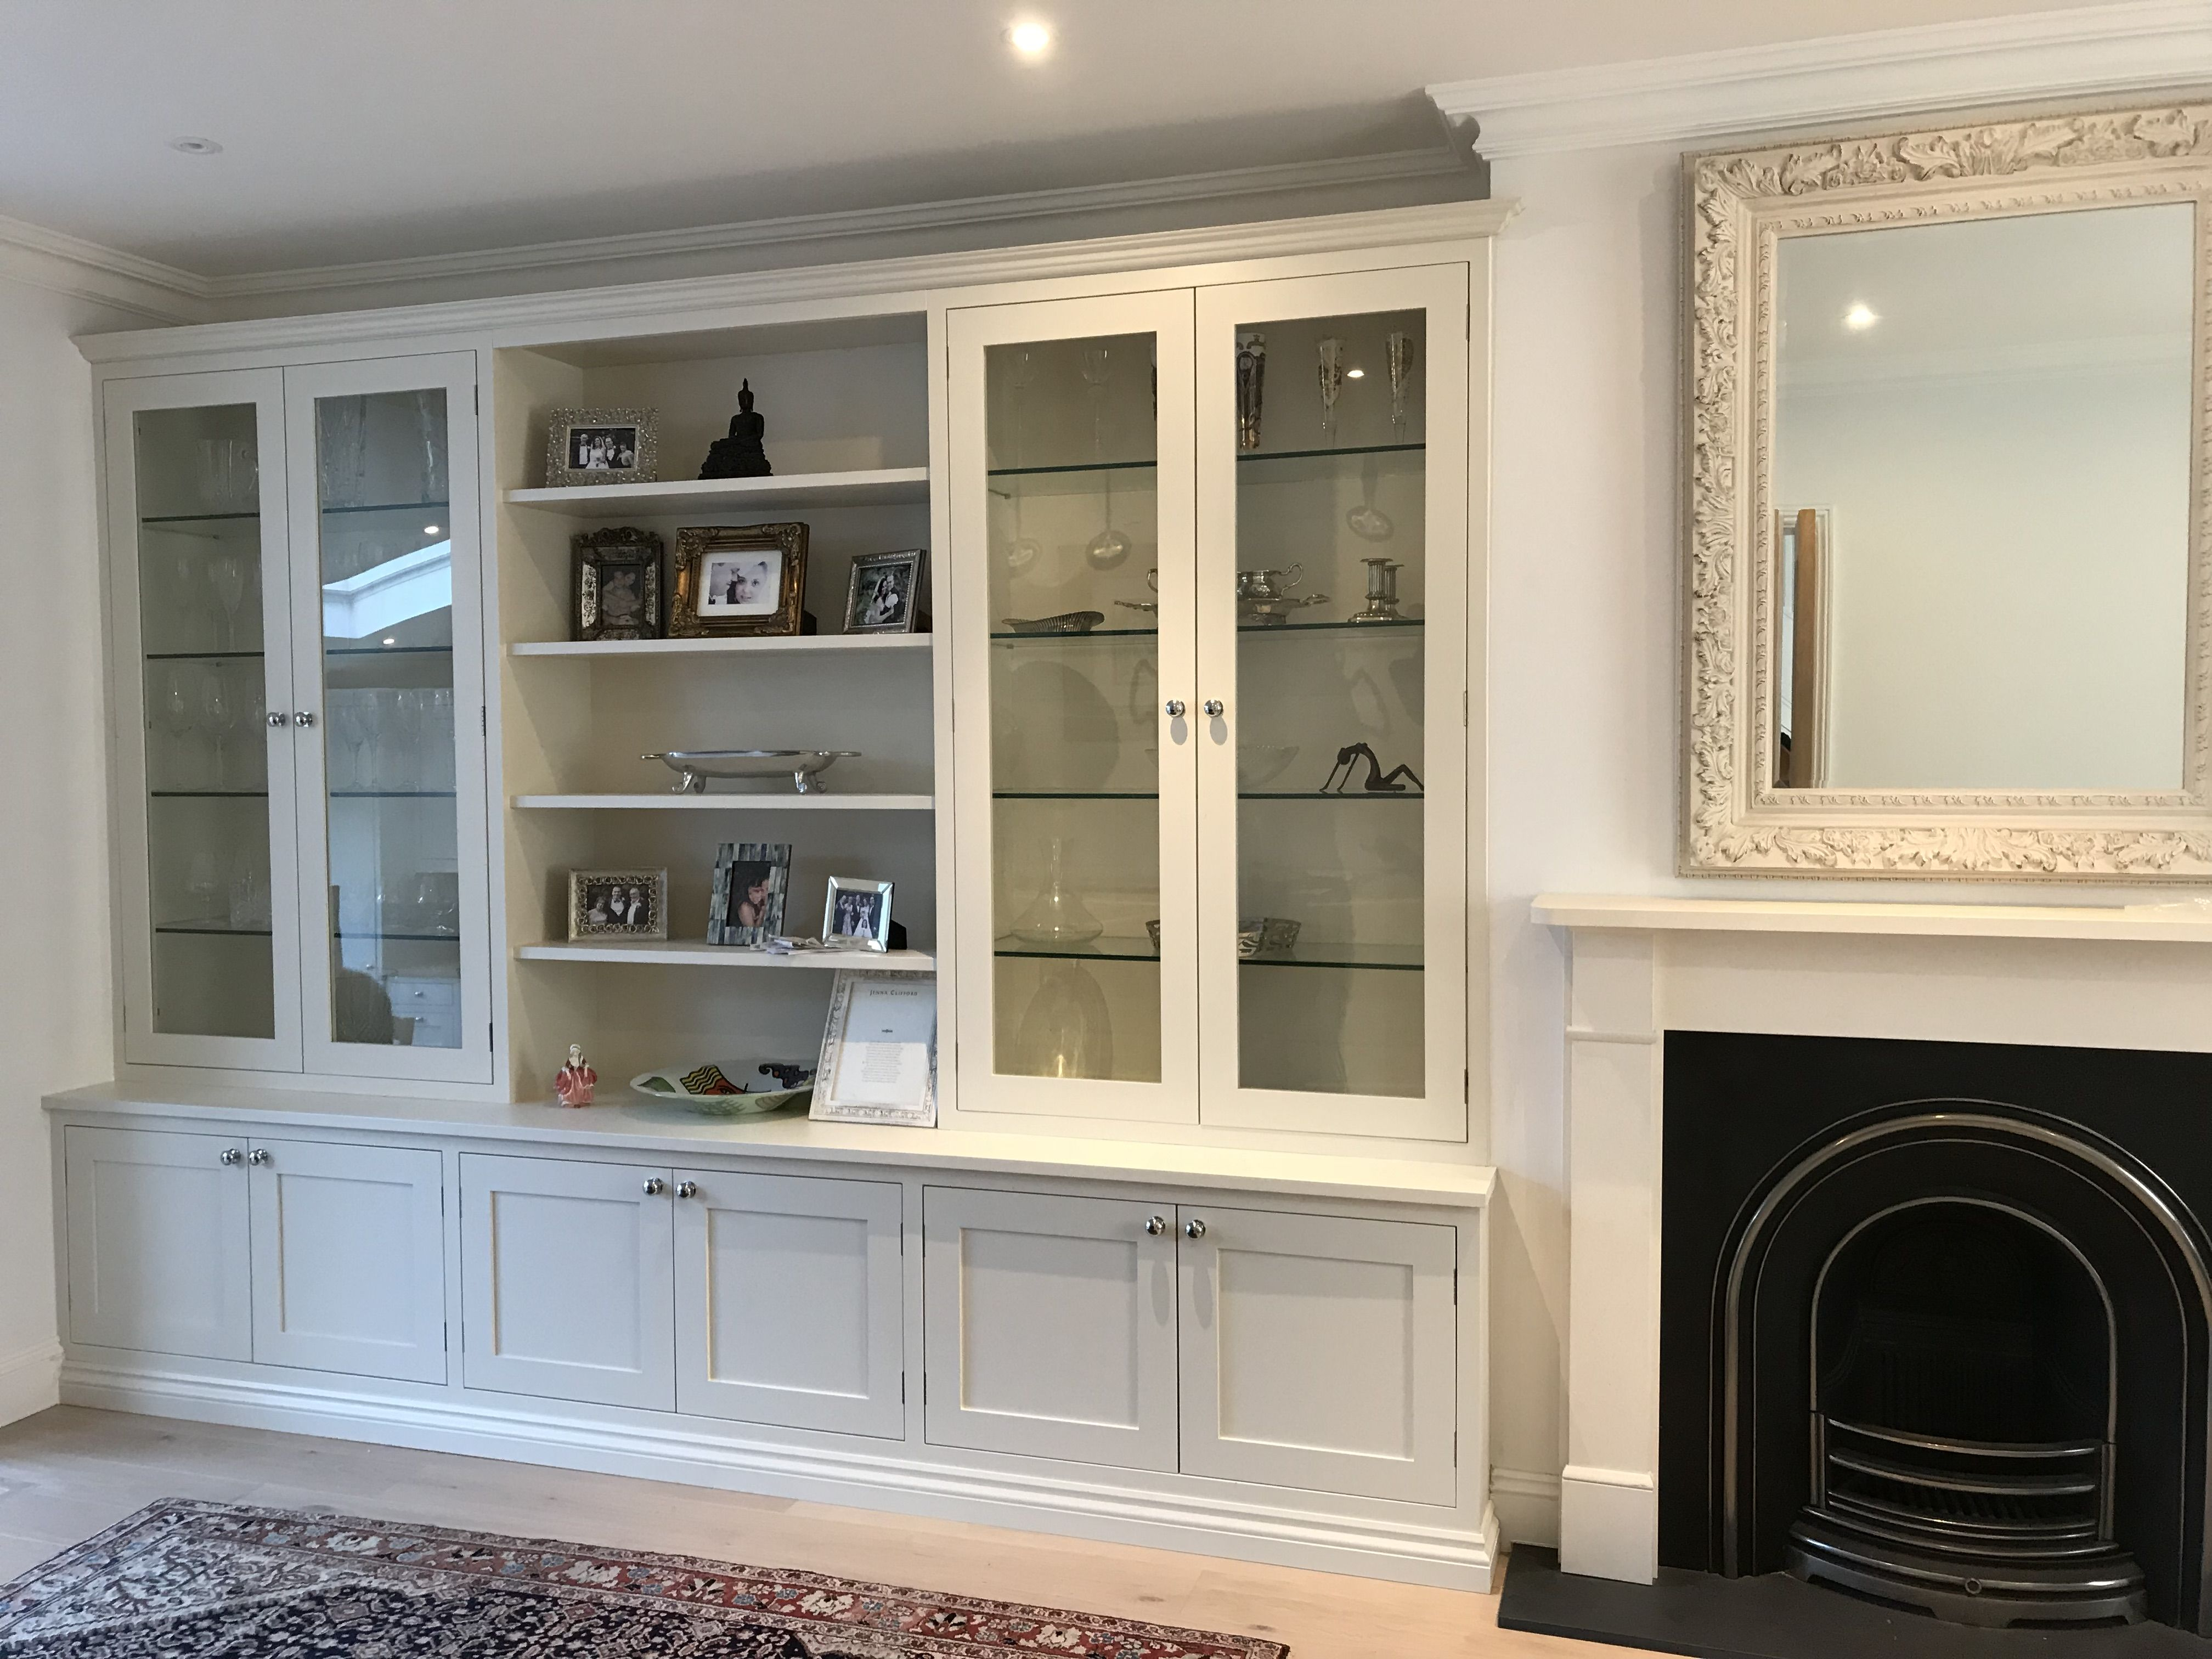 Custom Made Bookcase Bookshelves Clive Anderson Furniture Living Room Built In Cabinets Living Room Built Ins Glass Cabinets Display